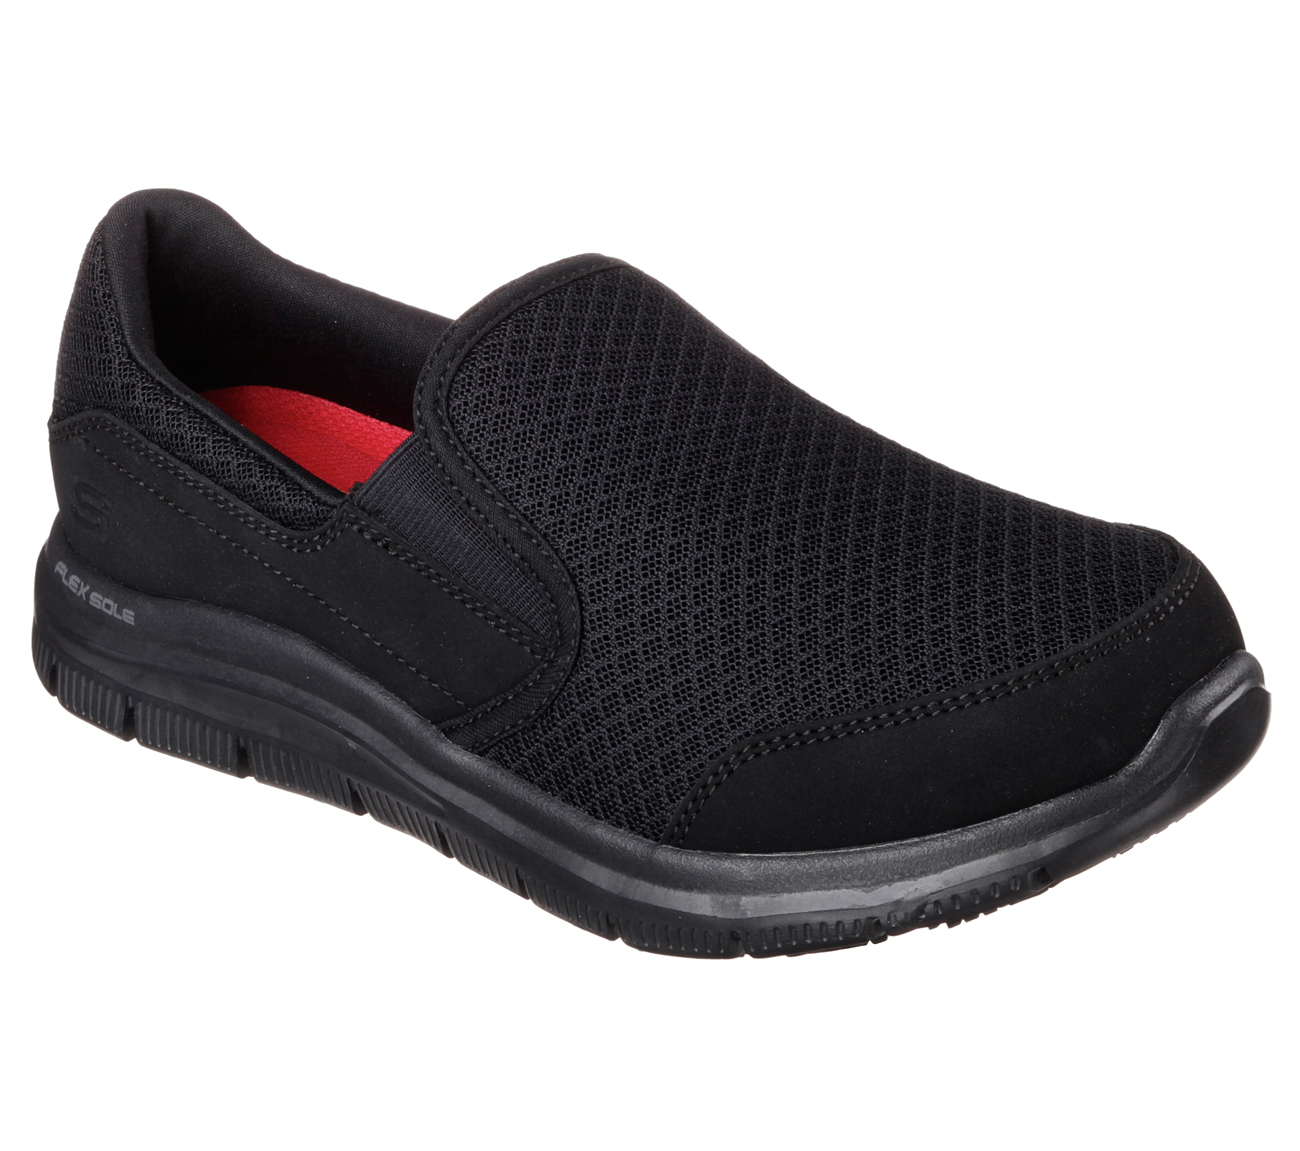 Skechers Relaxed Fit Memory Foam Womens Slip On Shoe